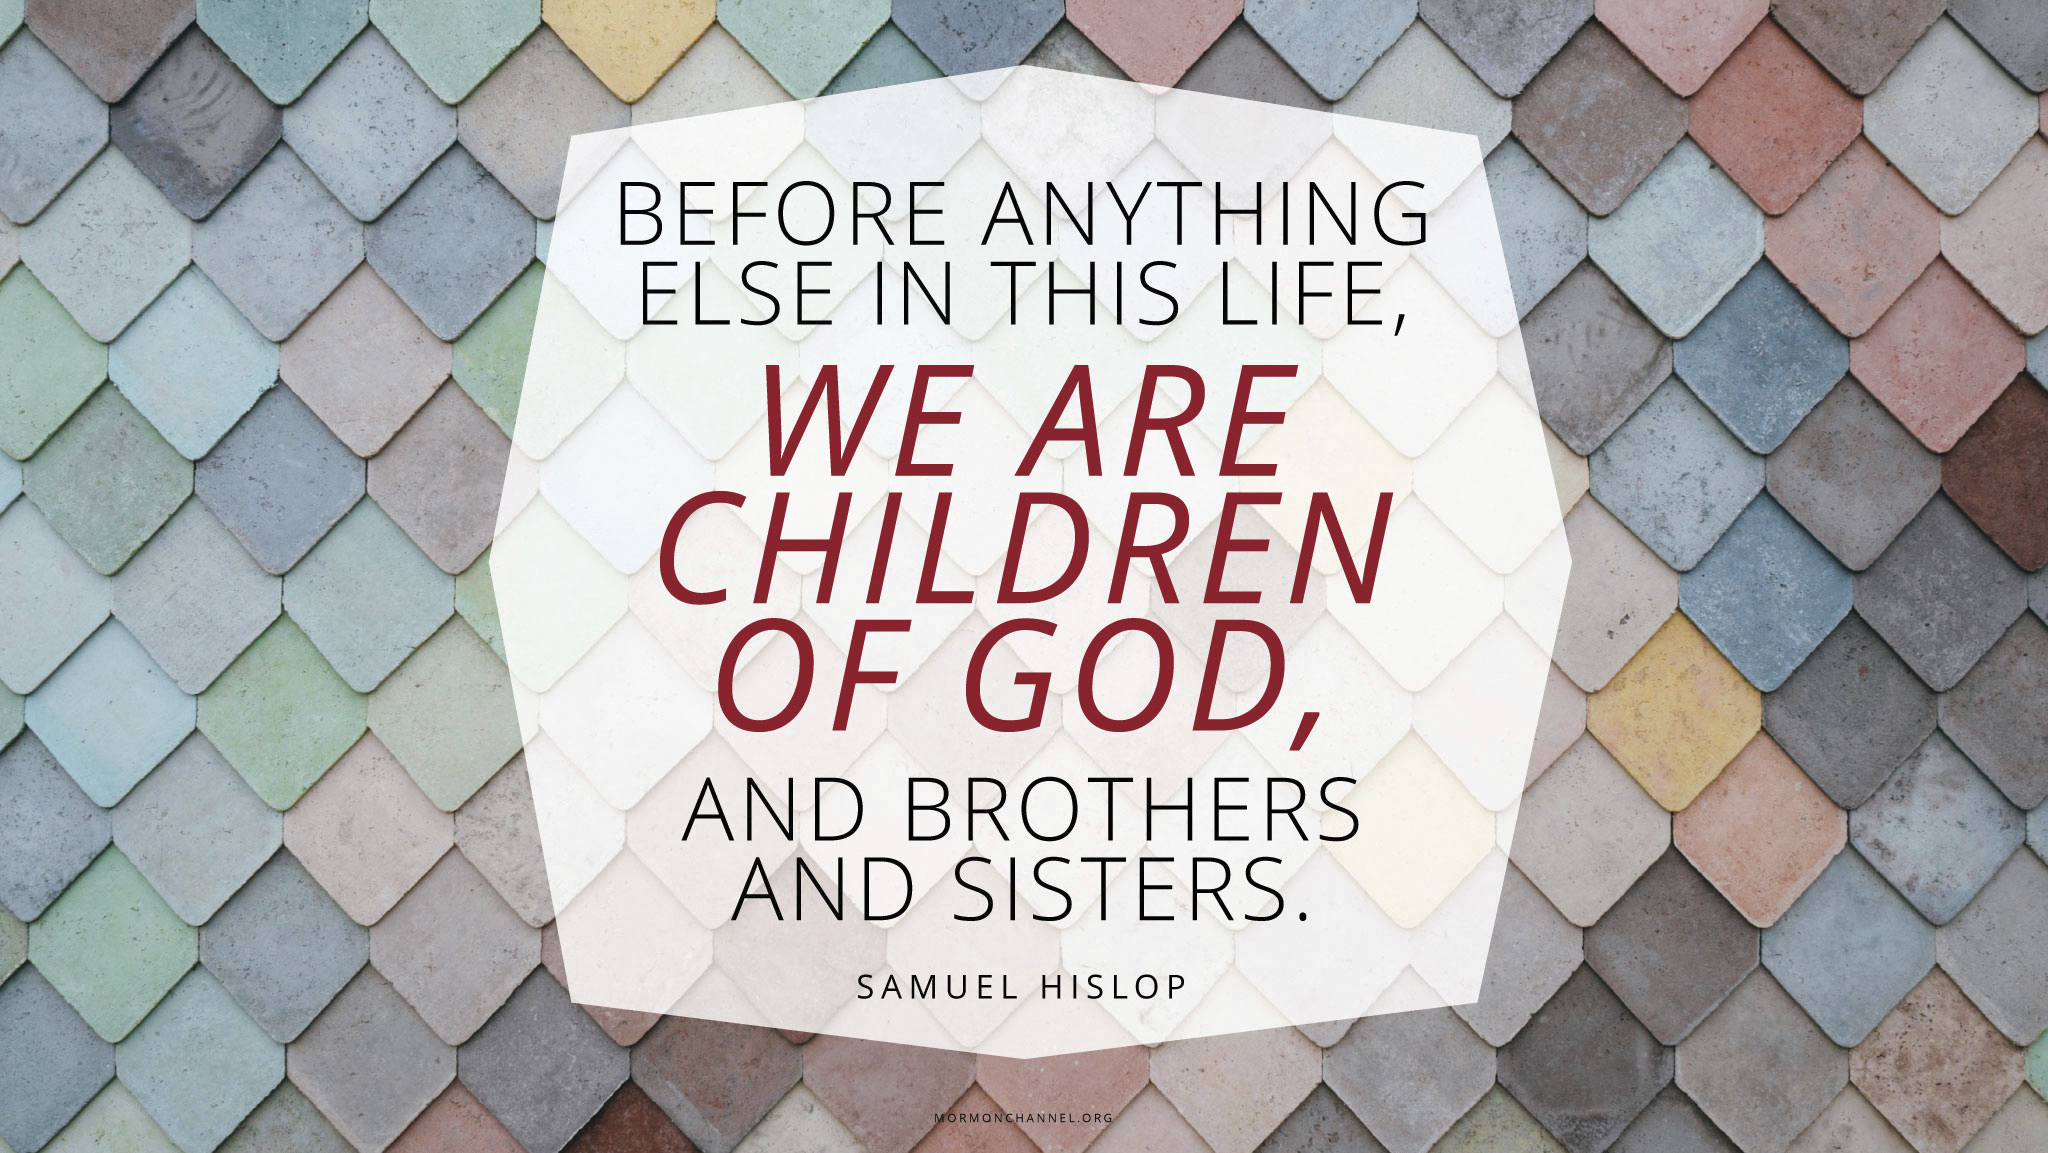 """""""Before anything else in this life, we are children of God, and brothers and sisters.""""—Samuel Hislop"""